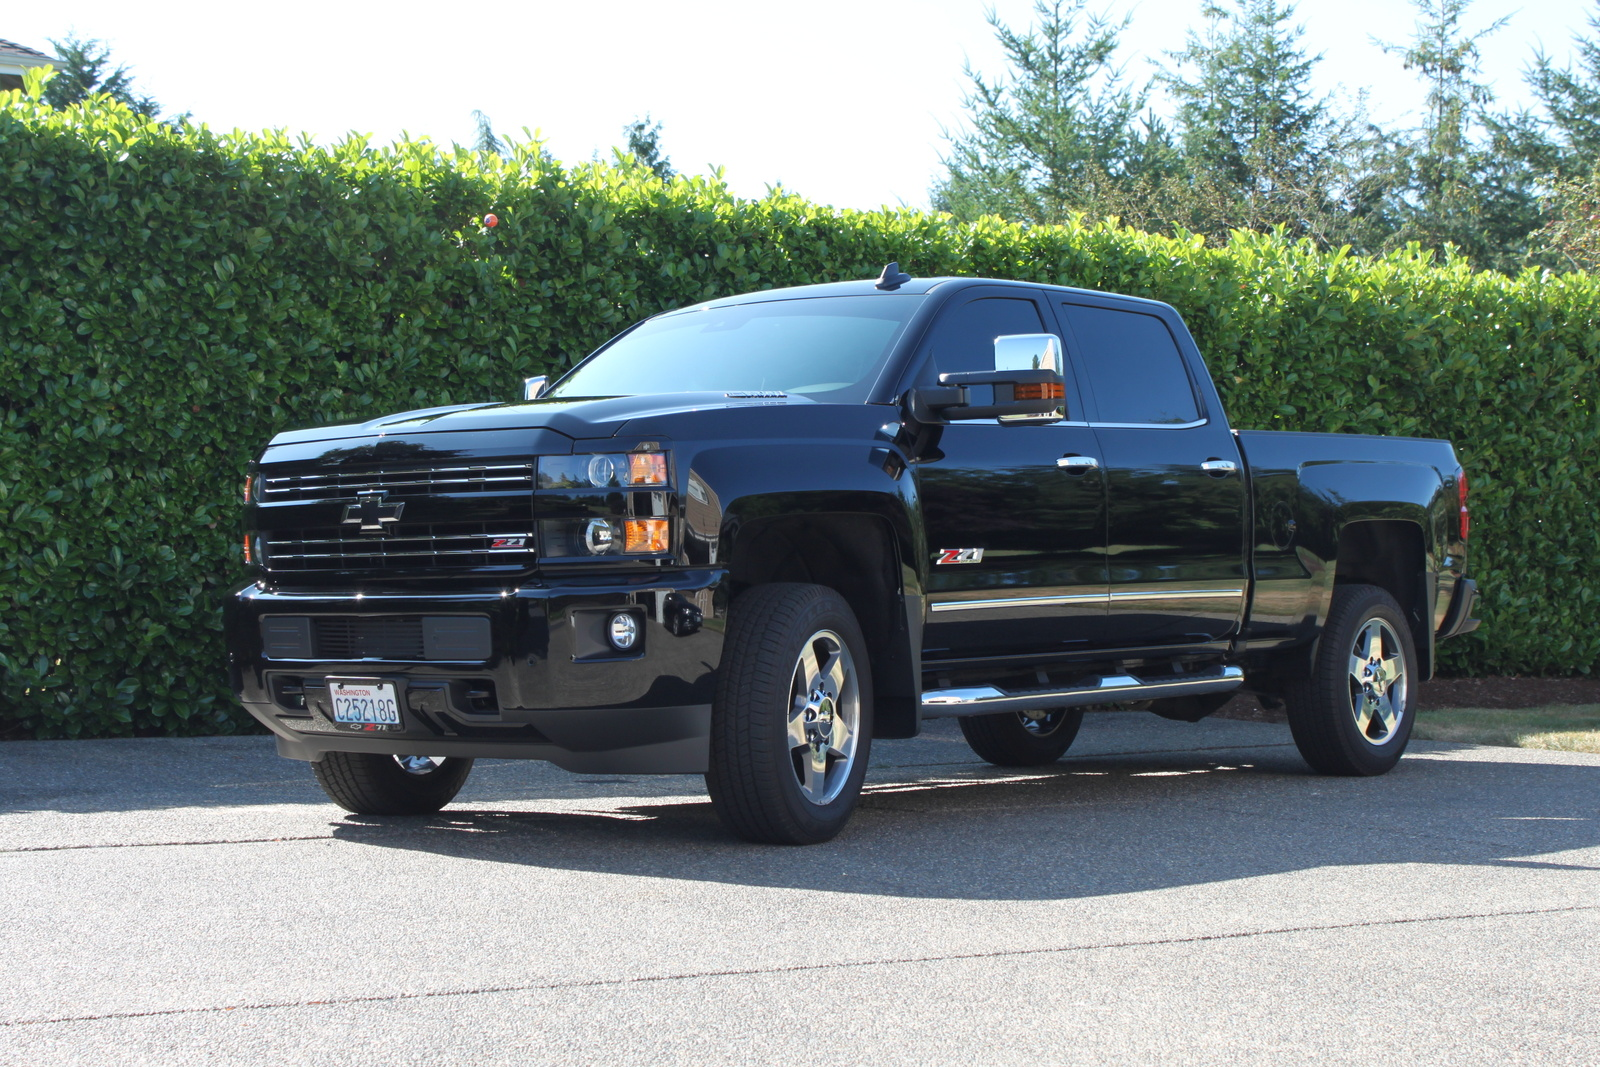 Silverado 2500 Towing Capacity >> Chevrolet Silverado 2500hd Questions Towing Capacity